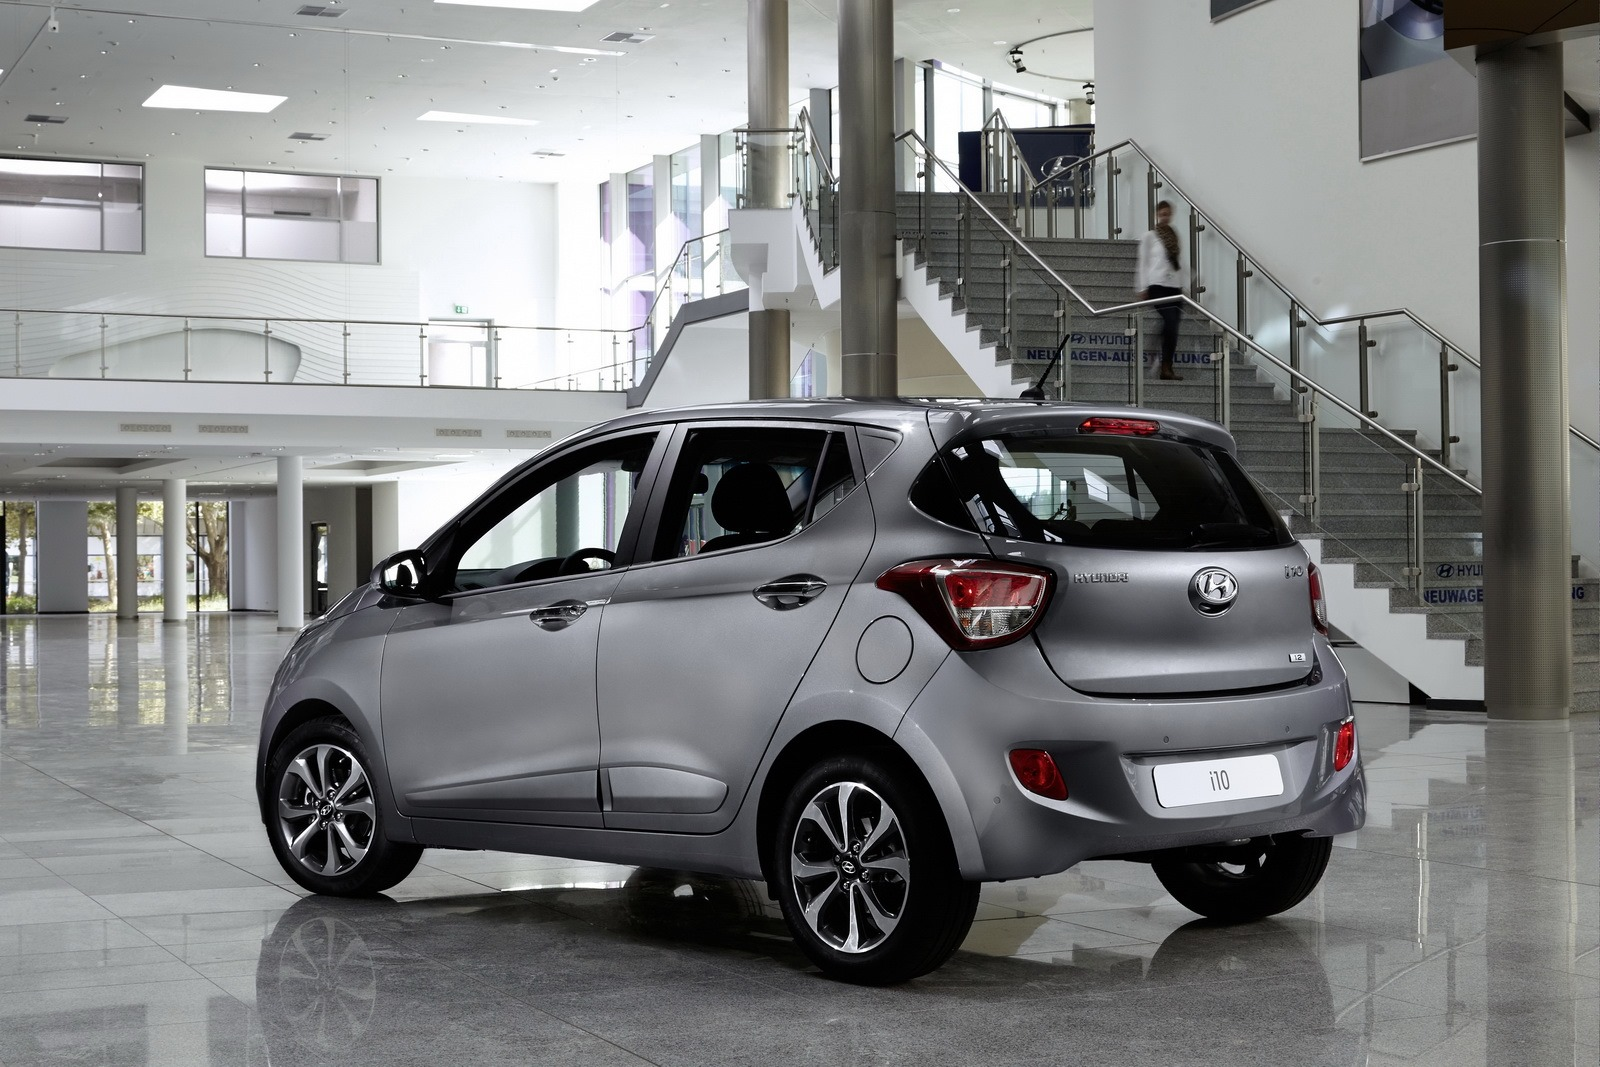 2016 hyundai i10 pictures information and specs auto. Black Bedroom Furniture Sets. Home Design Ideas